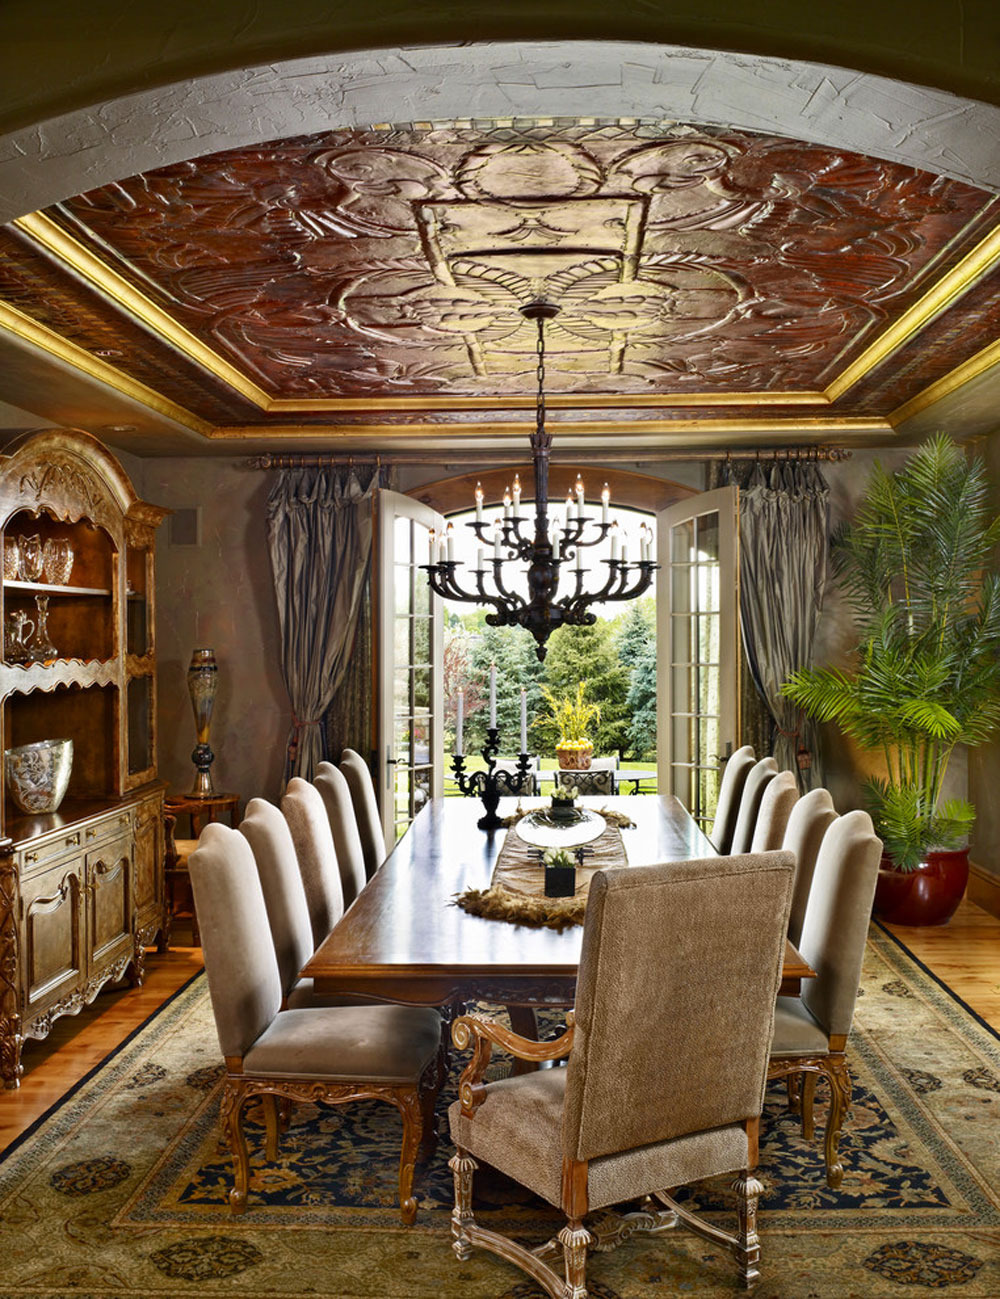 Beautiful Homes Inside and Out Awesome Beautiful Houses Interior Design Tips for Small or Big Homes